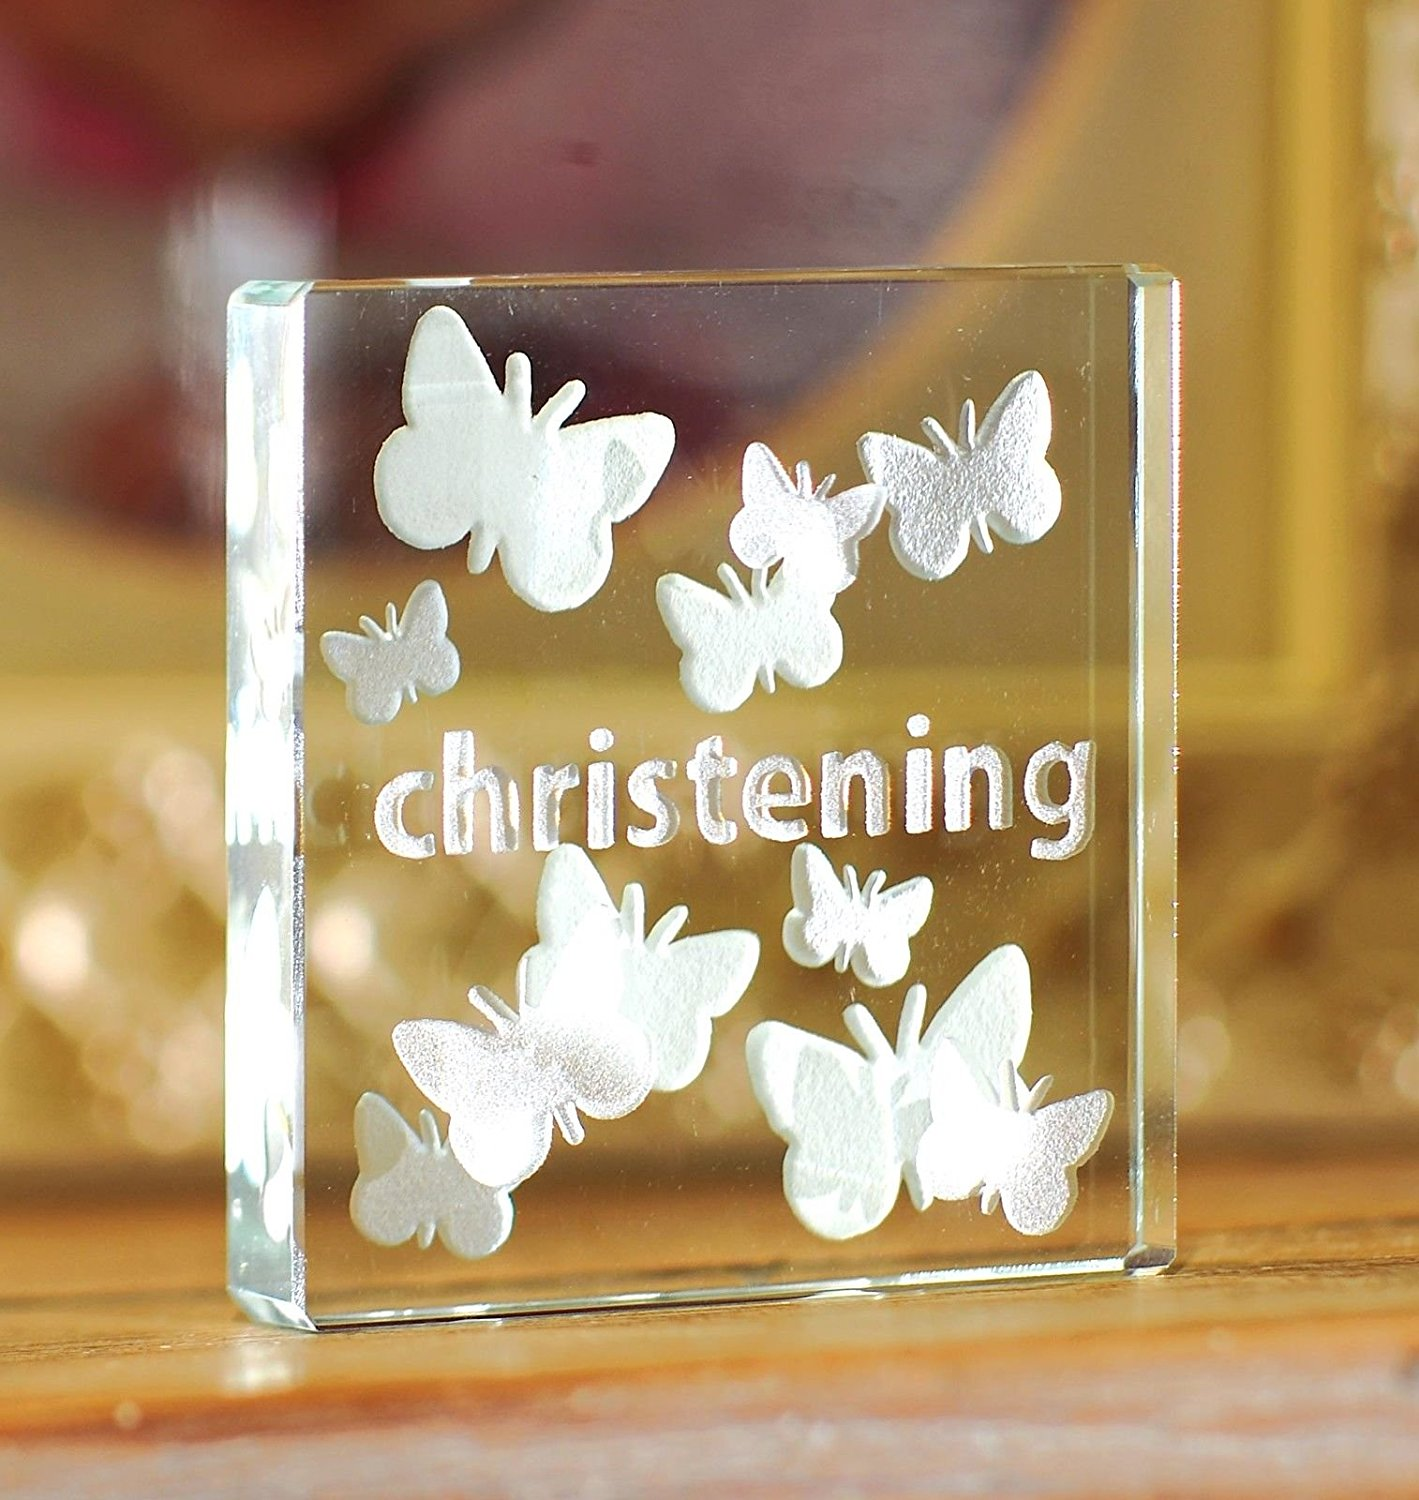 Spaceform Christening Gift Ideas & Keepsake (Godchild, Baptism, Godparent)